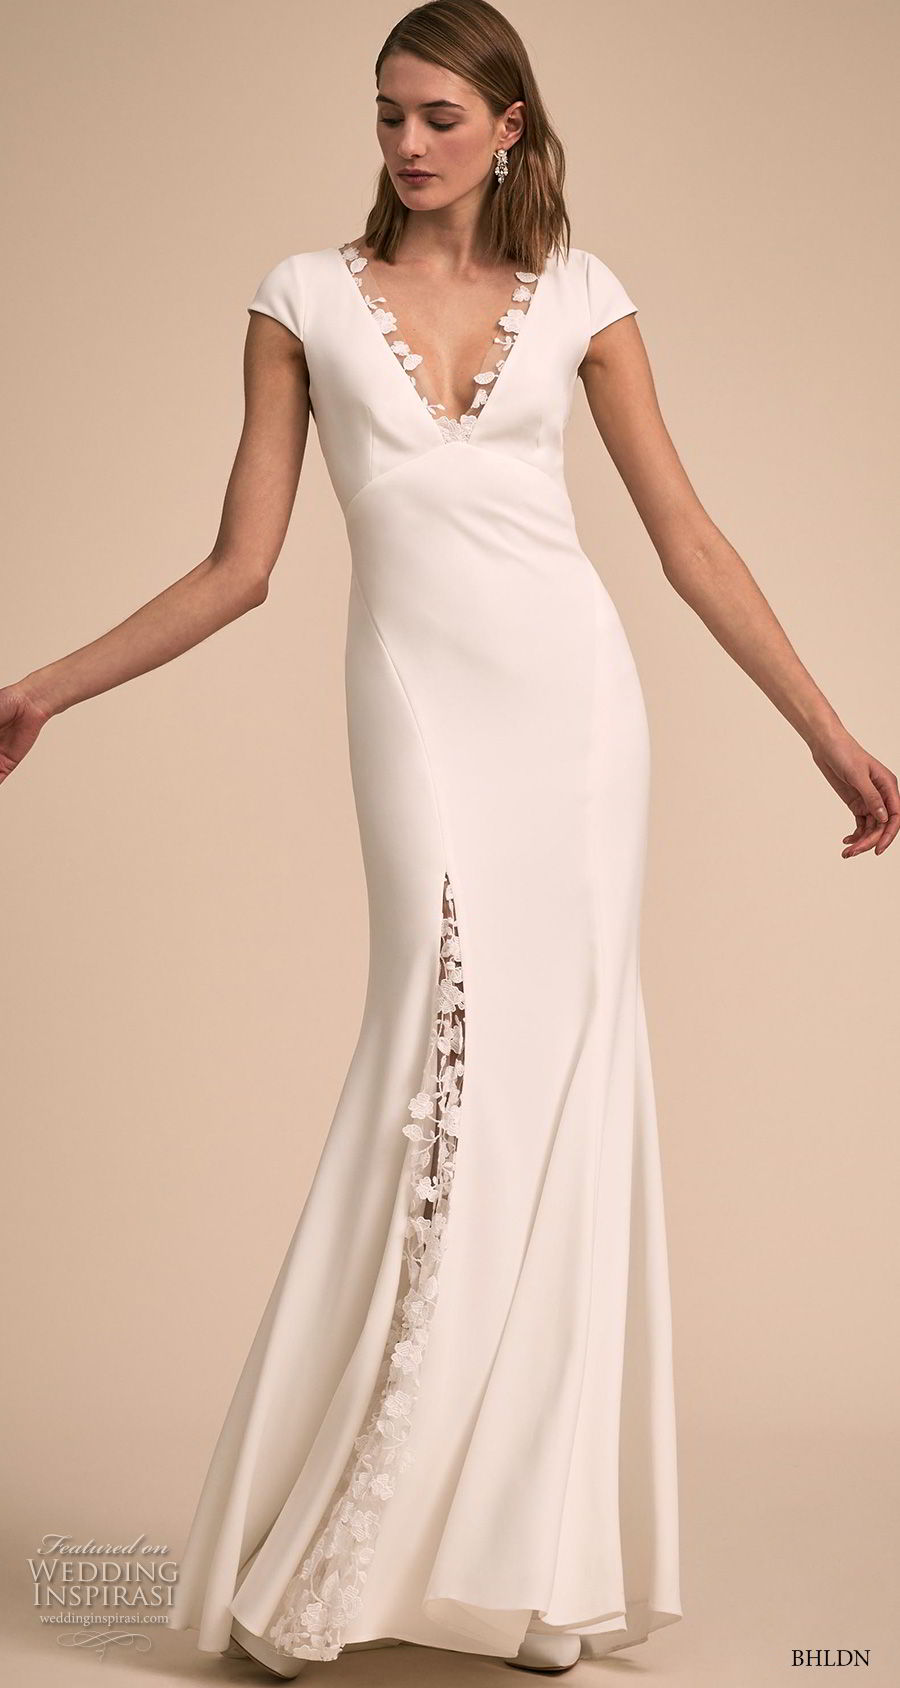 bhldn 2018 bridal cap sleeves v neck elegant simple romantic bohemian sheath wedding dress keyhole back sweep train (13) mv